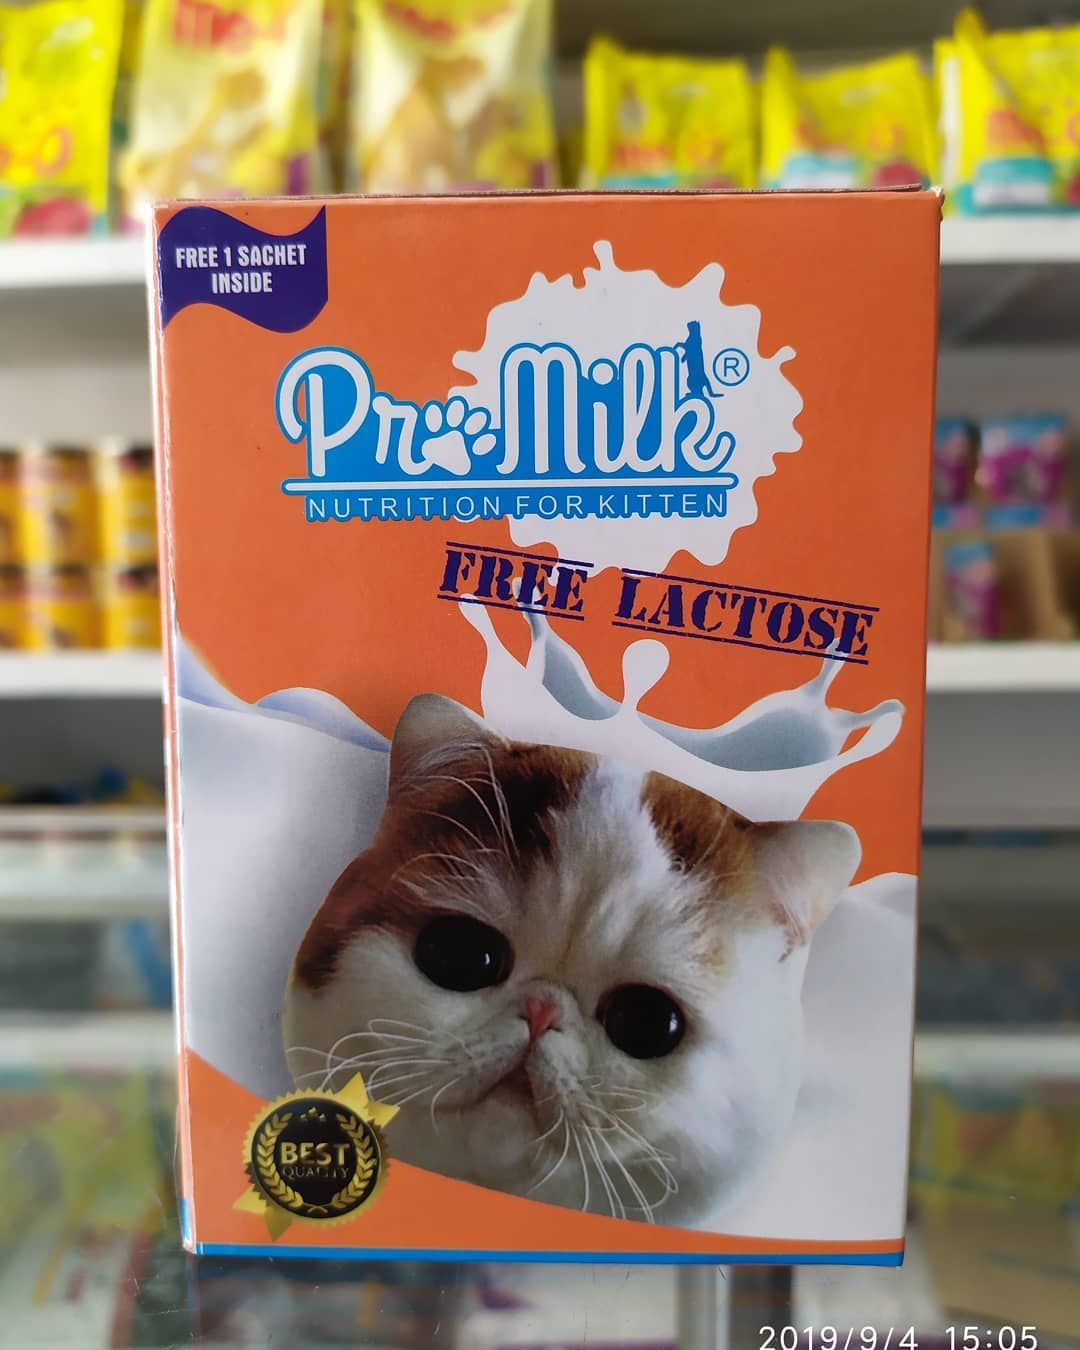 Ready Pro Milk Nutrion For Kitten Open Everyday 08 00 21 00 Wib Grab It Fast Milkcat Catmilk Cat Food Sachet Frosted Flakes Cereal Box